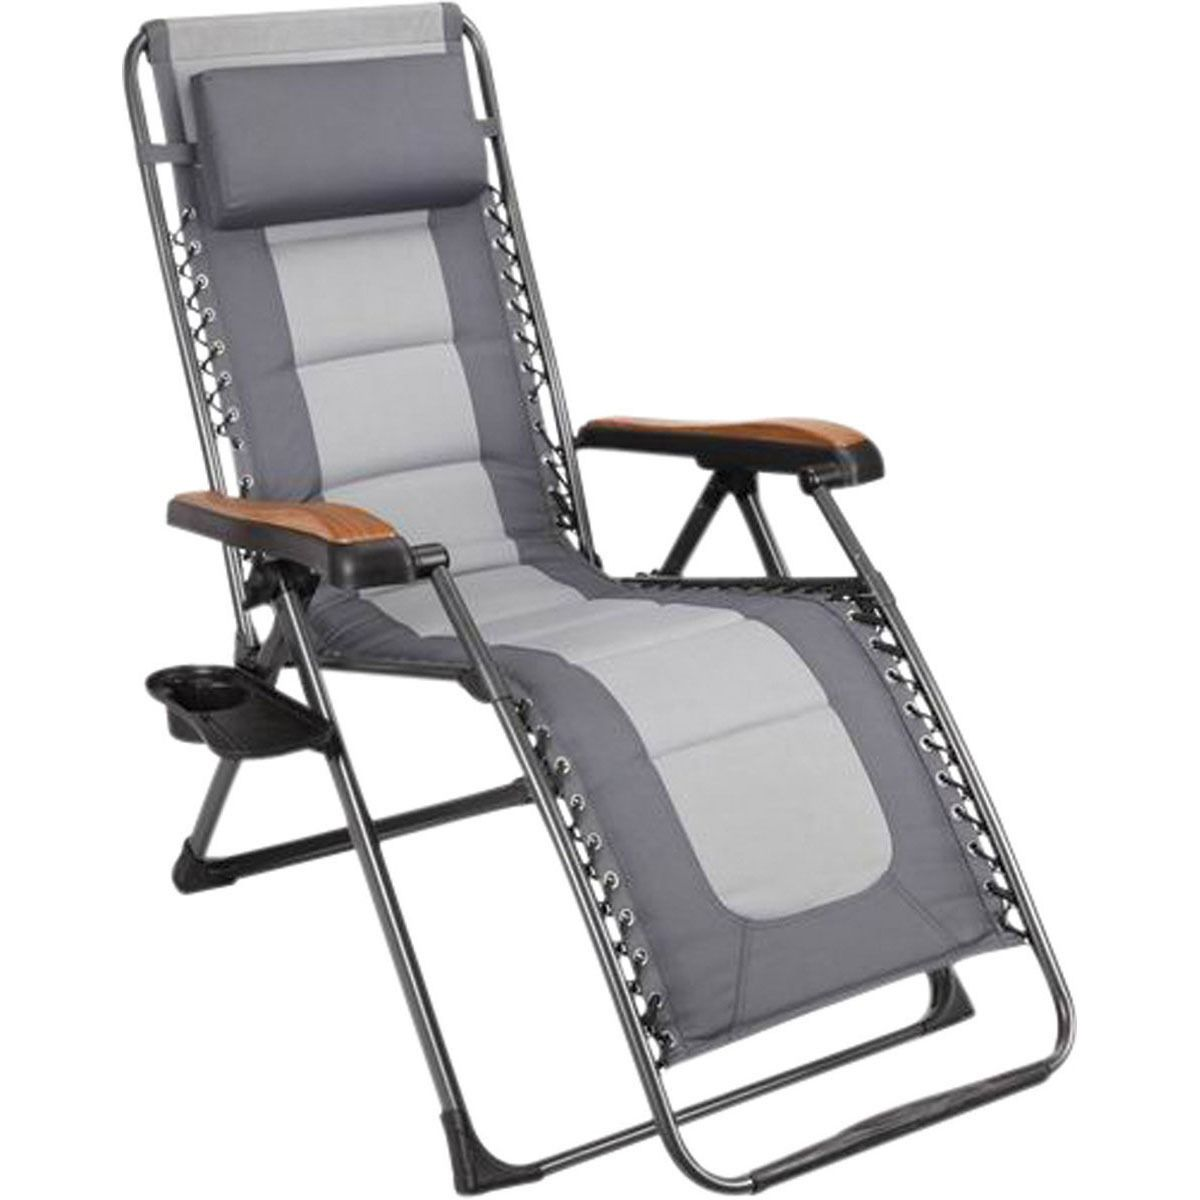 Cheap Folding Chairs Outdoor Single Folding Camping Chaircheap Outdoor Camping